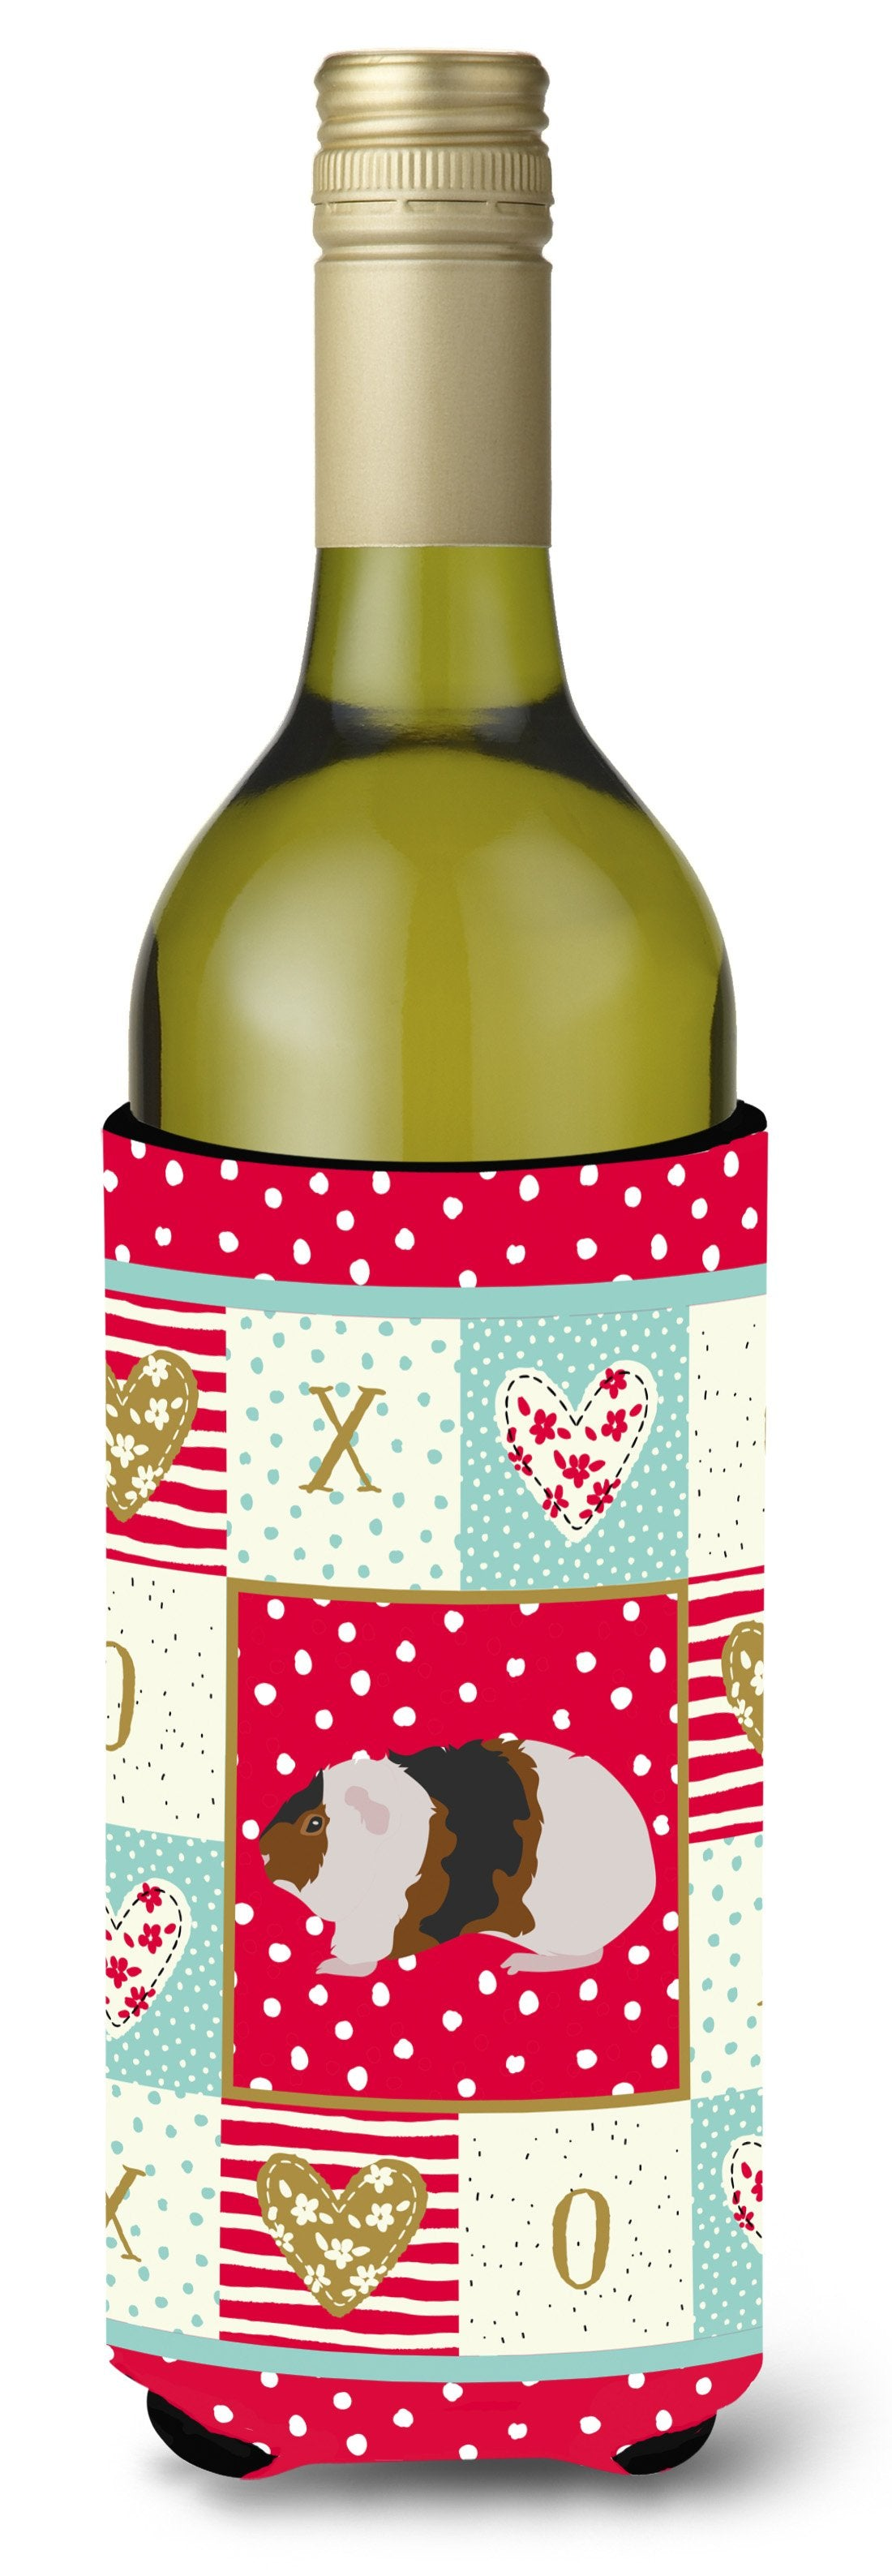 Teddy Guinea Pig Love Wine Bottle Hugger CK5436LITERK by Caroline's Treasures